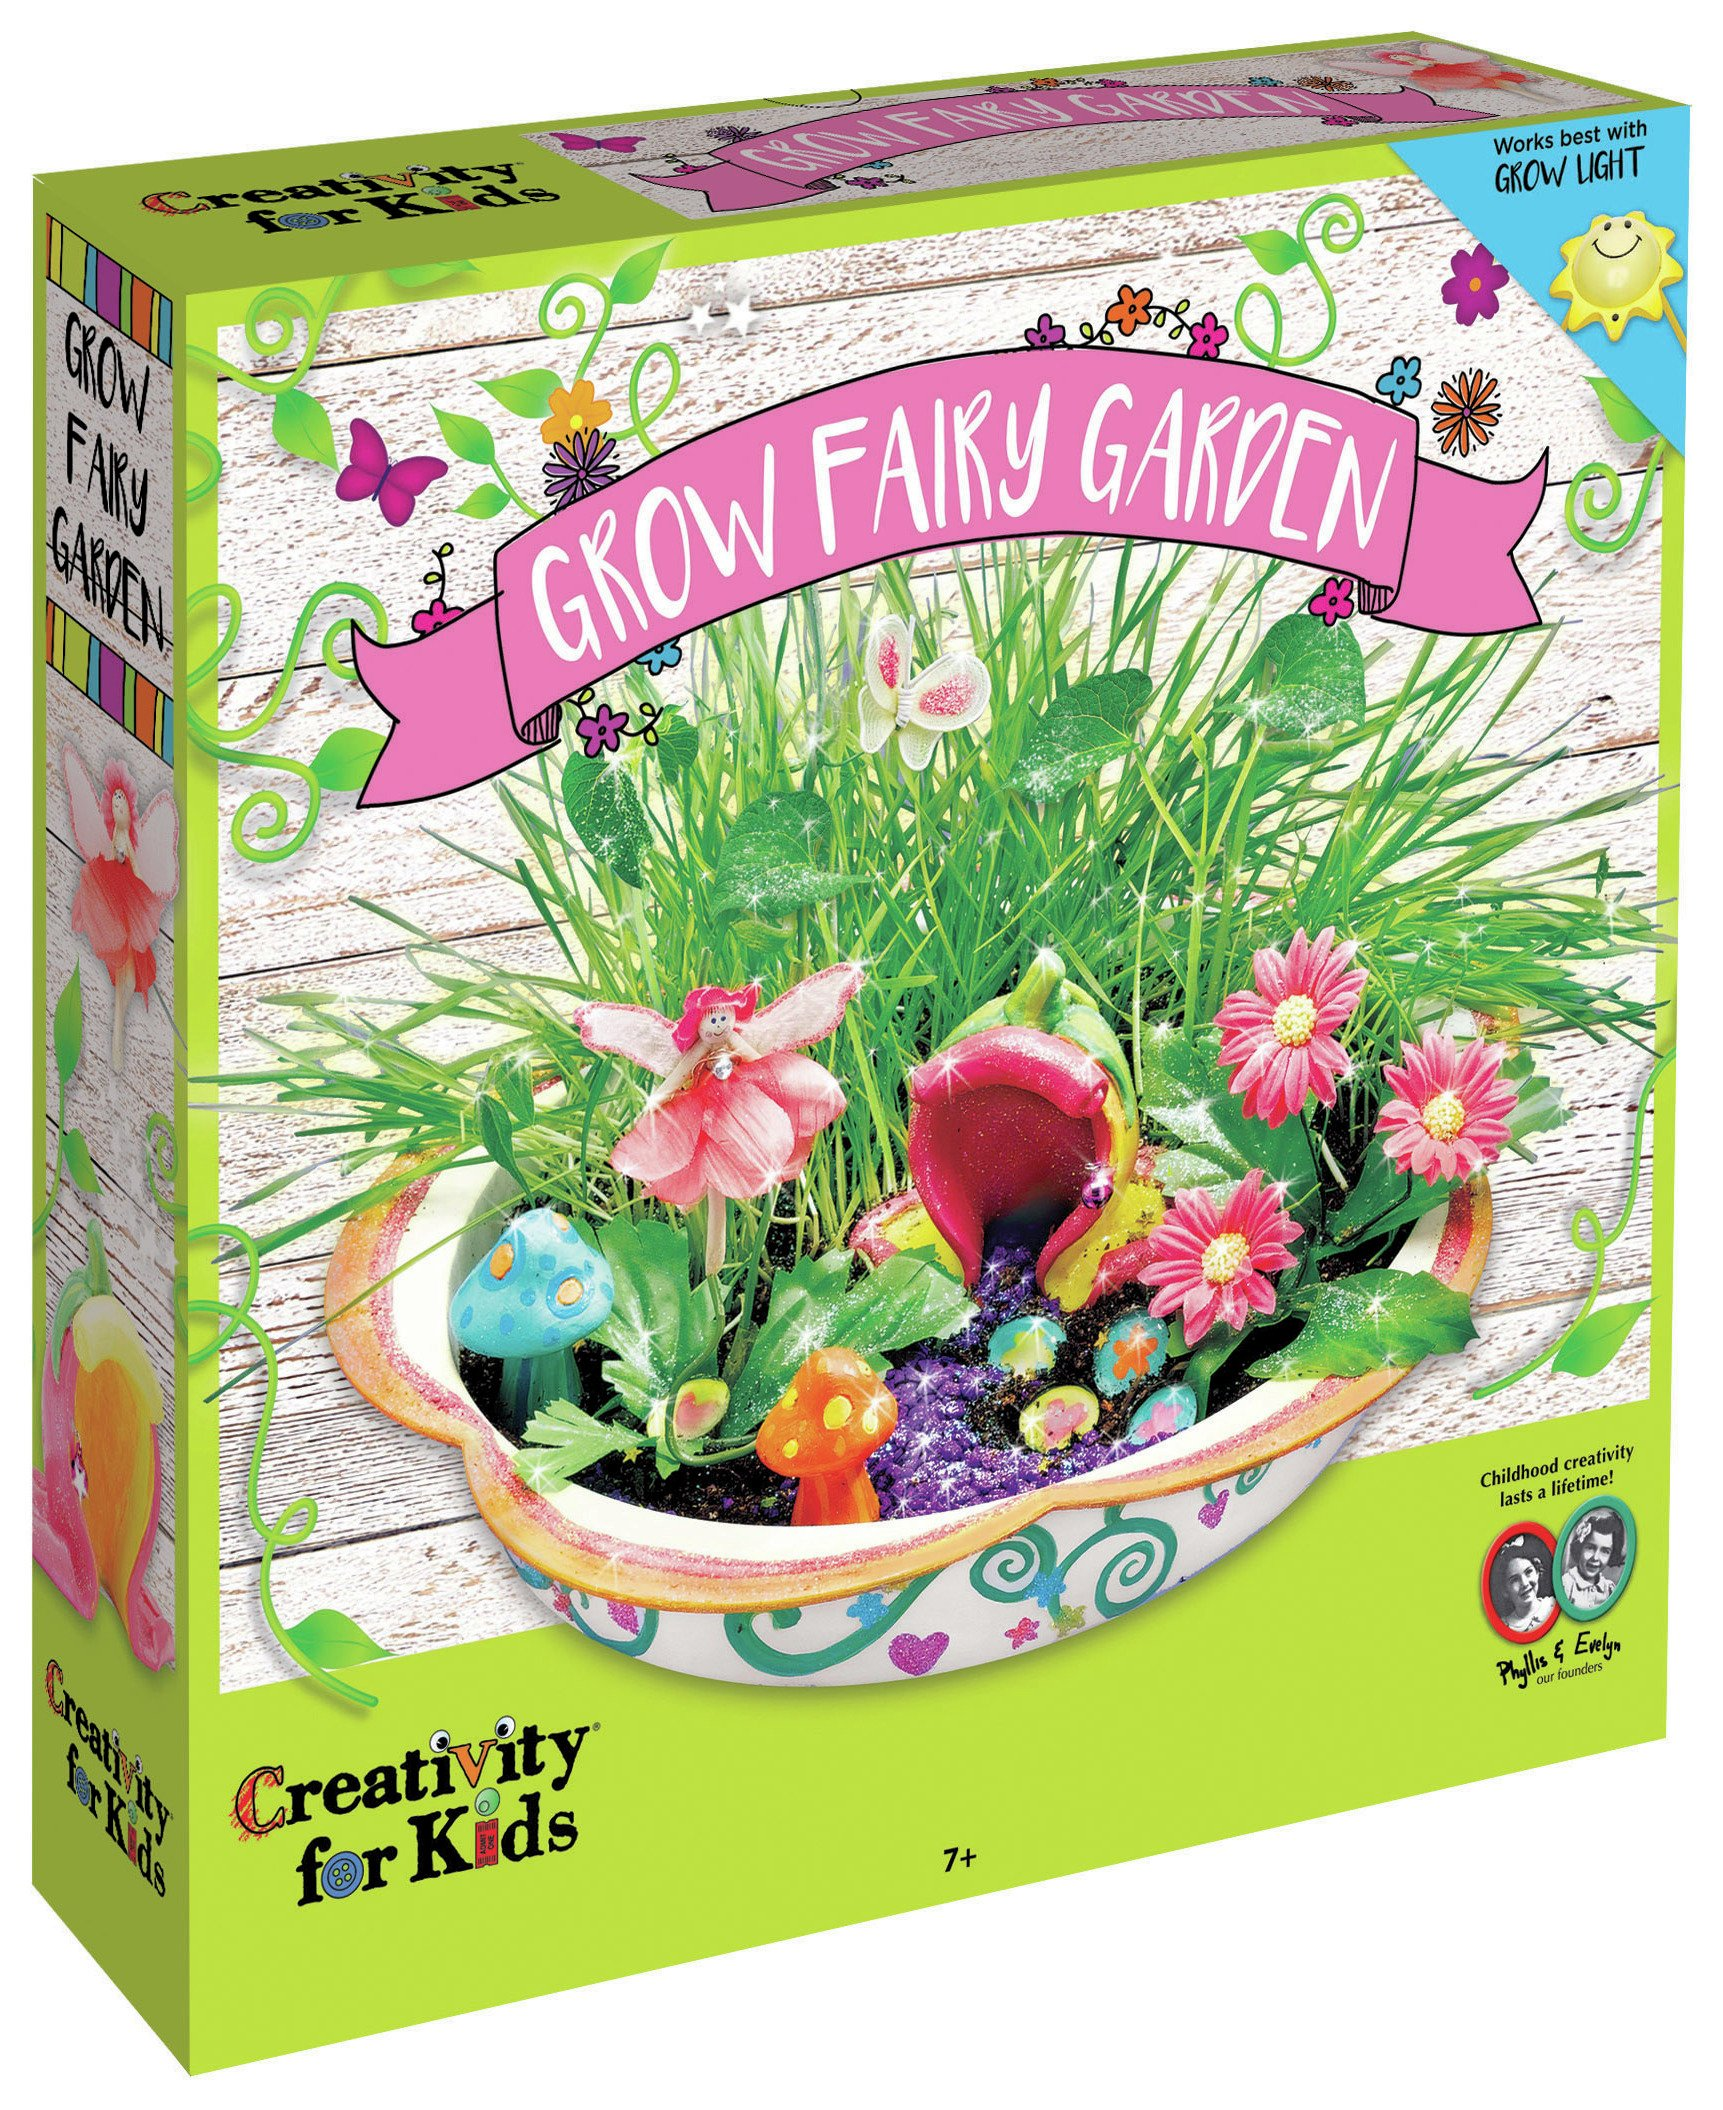 Image of Creativity for Kids GROW Enchanted Fairy Garden Set.